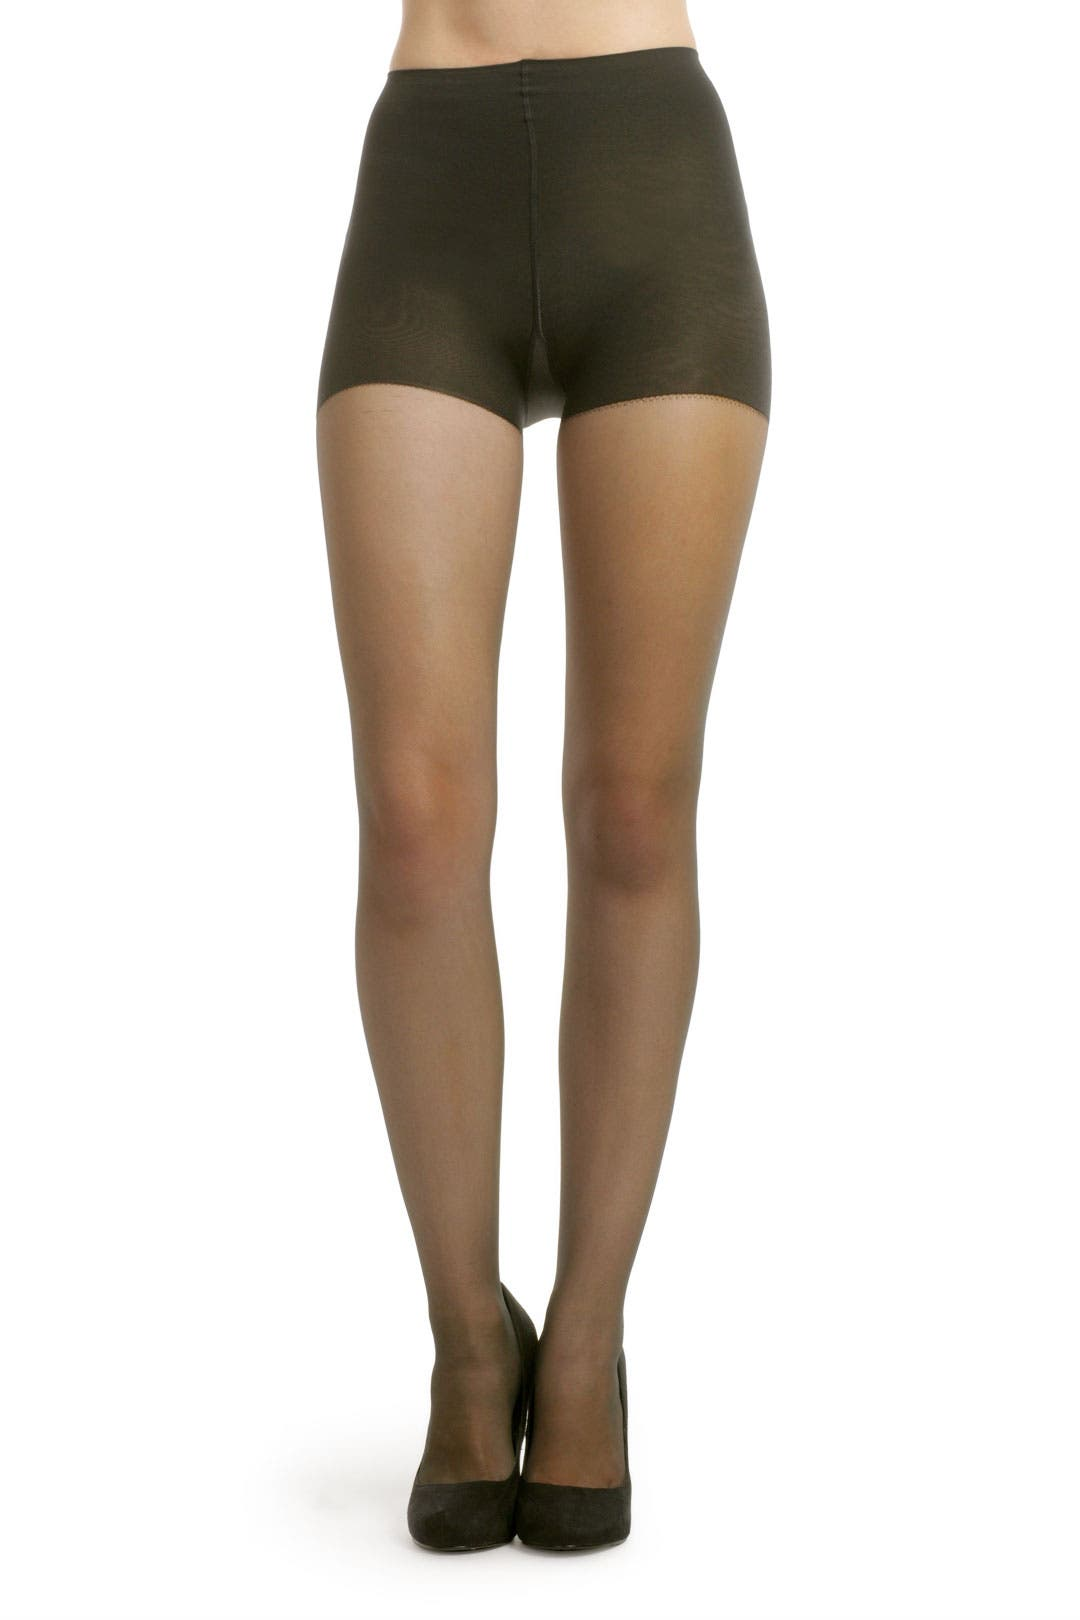 Black Sheer Tights with Control Top by Hue